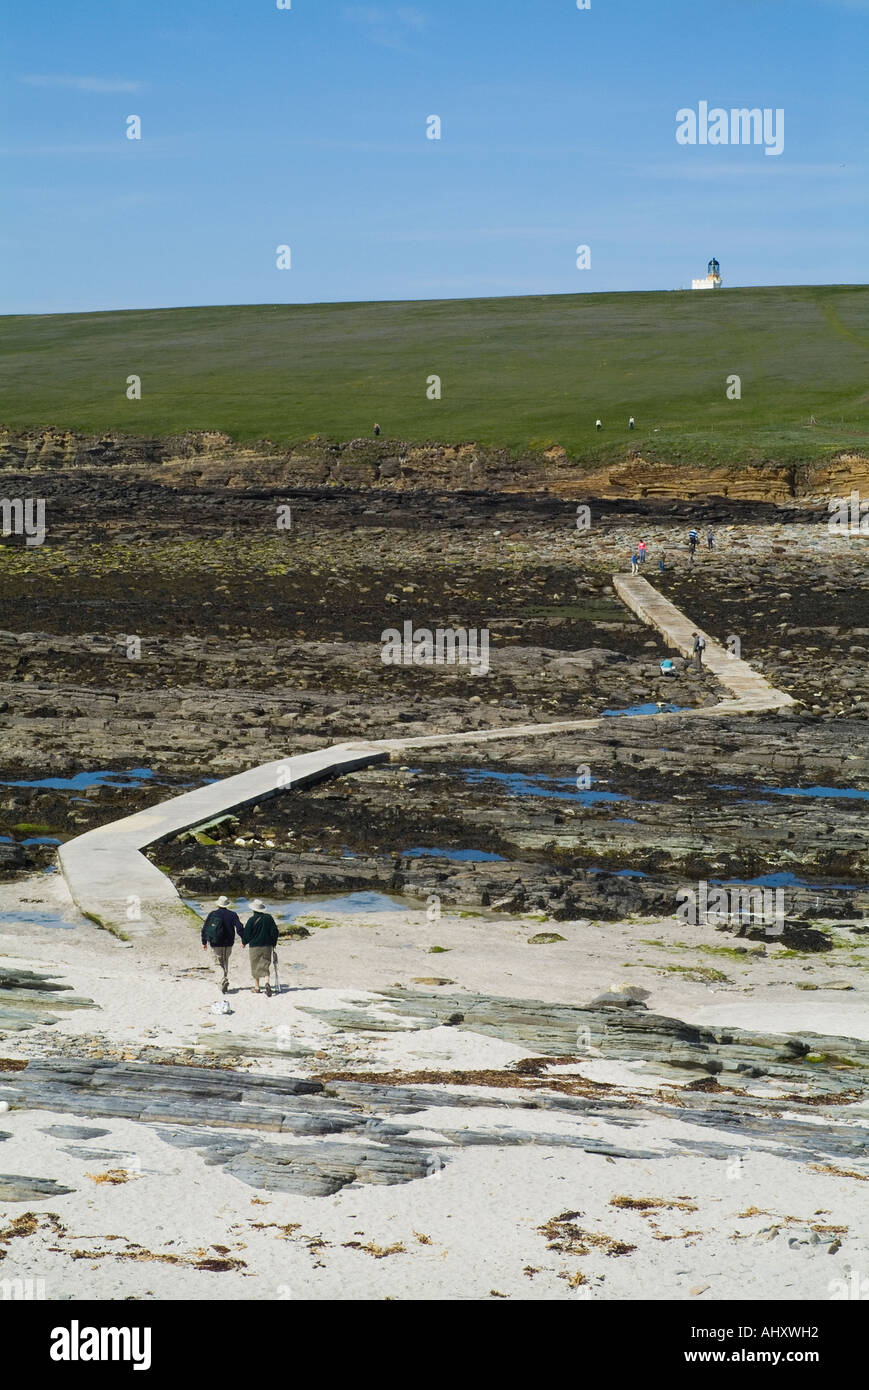 dh Brough of Birsay BIRSAY ORKNEY Couple walking over causeway to Birsay lighthouse island Stock Photo